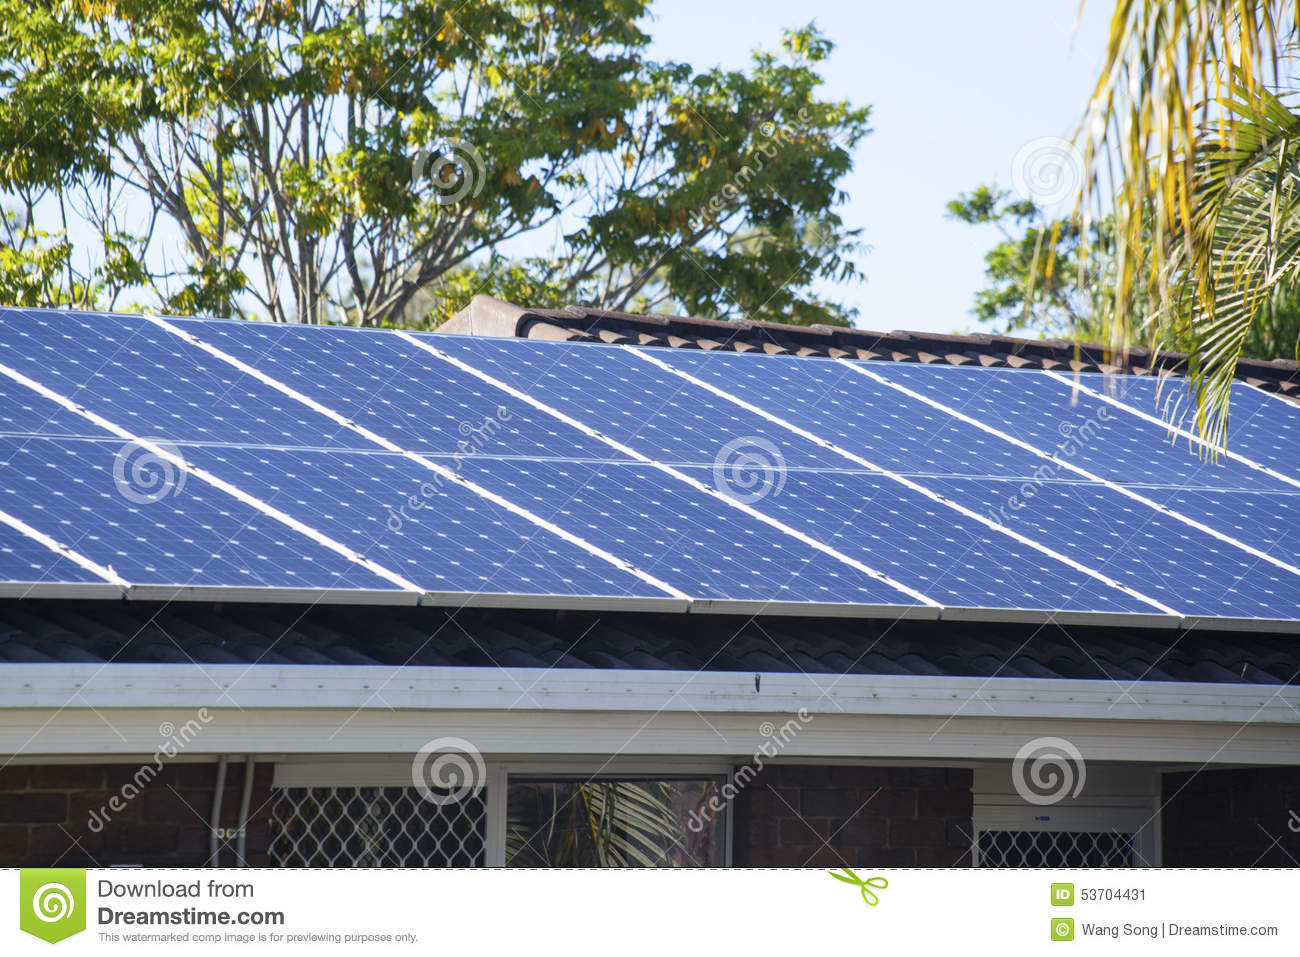 Solar Pv Systems Backup Power Ups Systems: Photovoltaic Solar Energy Stock Image. Image Of Panels